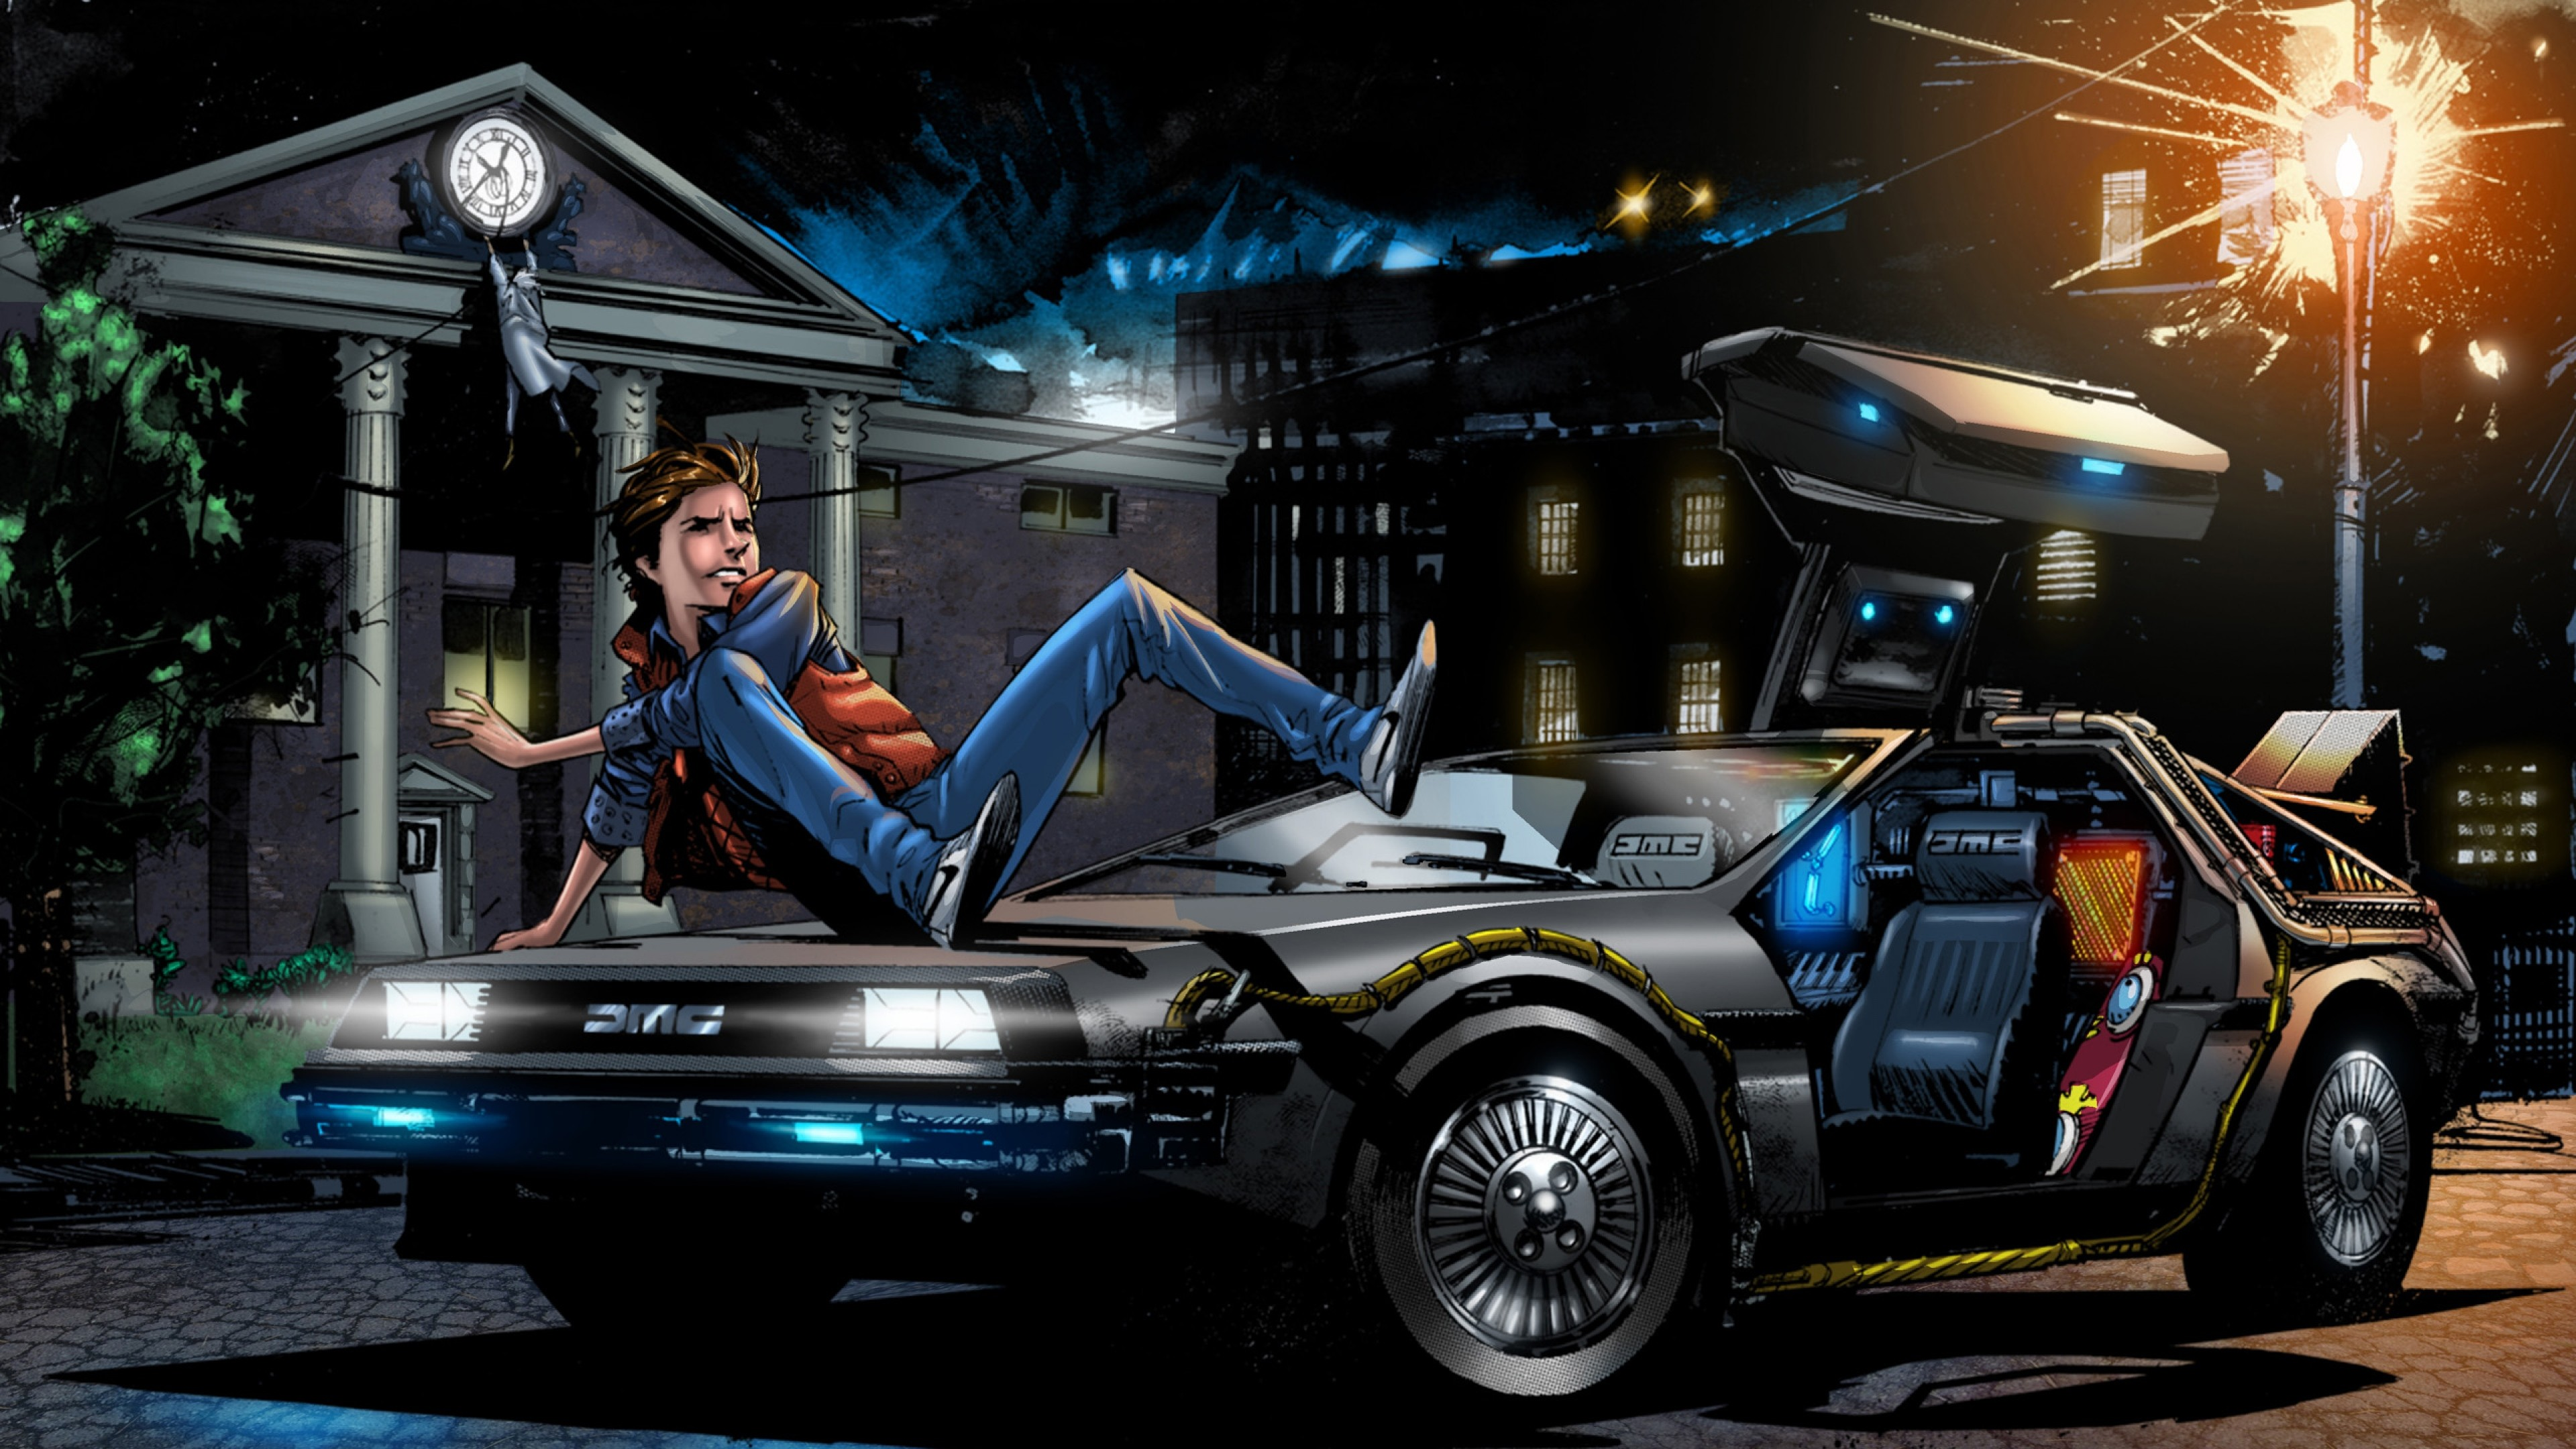 3840x2160 Preview wallpaper back to the future, marty mcfly, art, delorean dmc-12